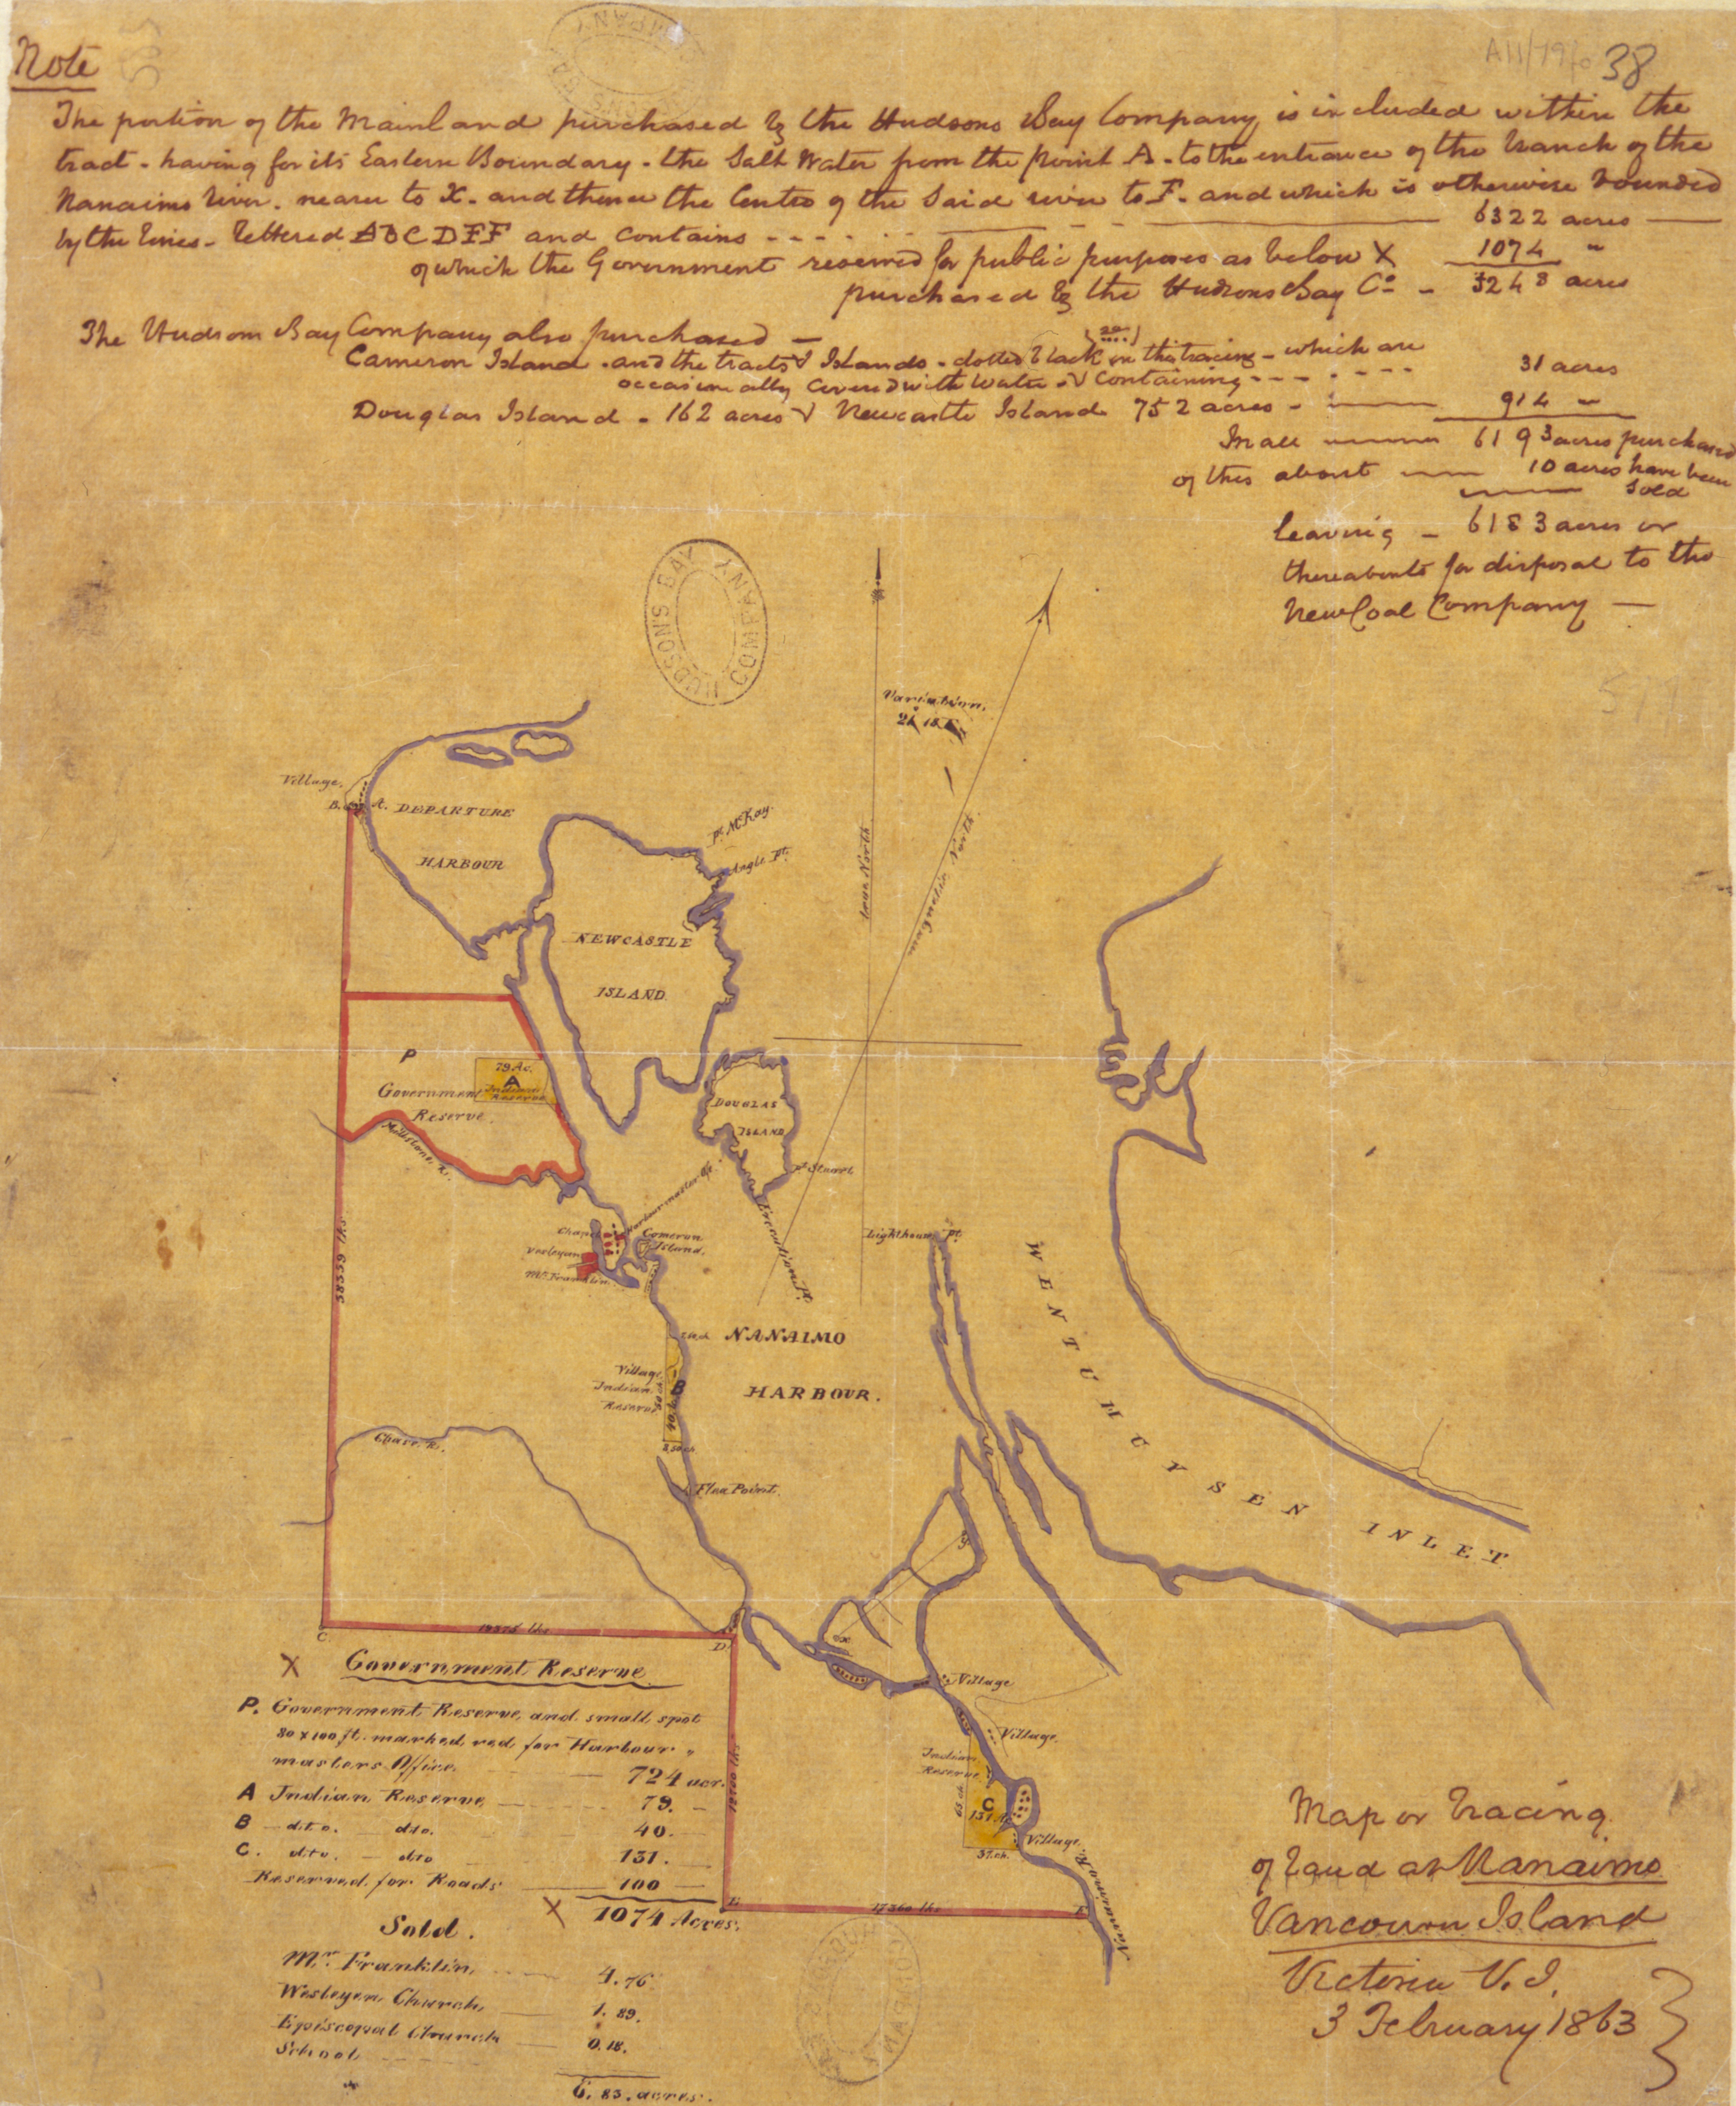 Map or Tracing of Land at Nanaimo Vancouver Island Victoria V.I. 3 February 1863